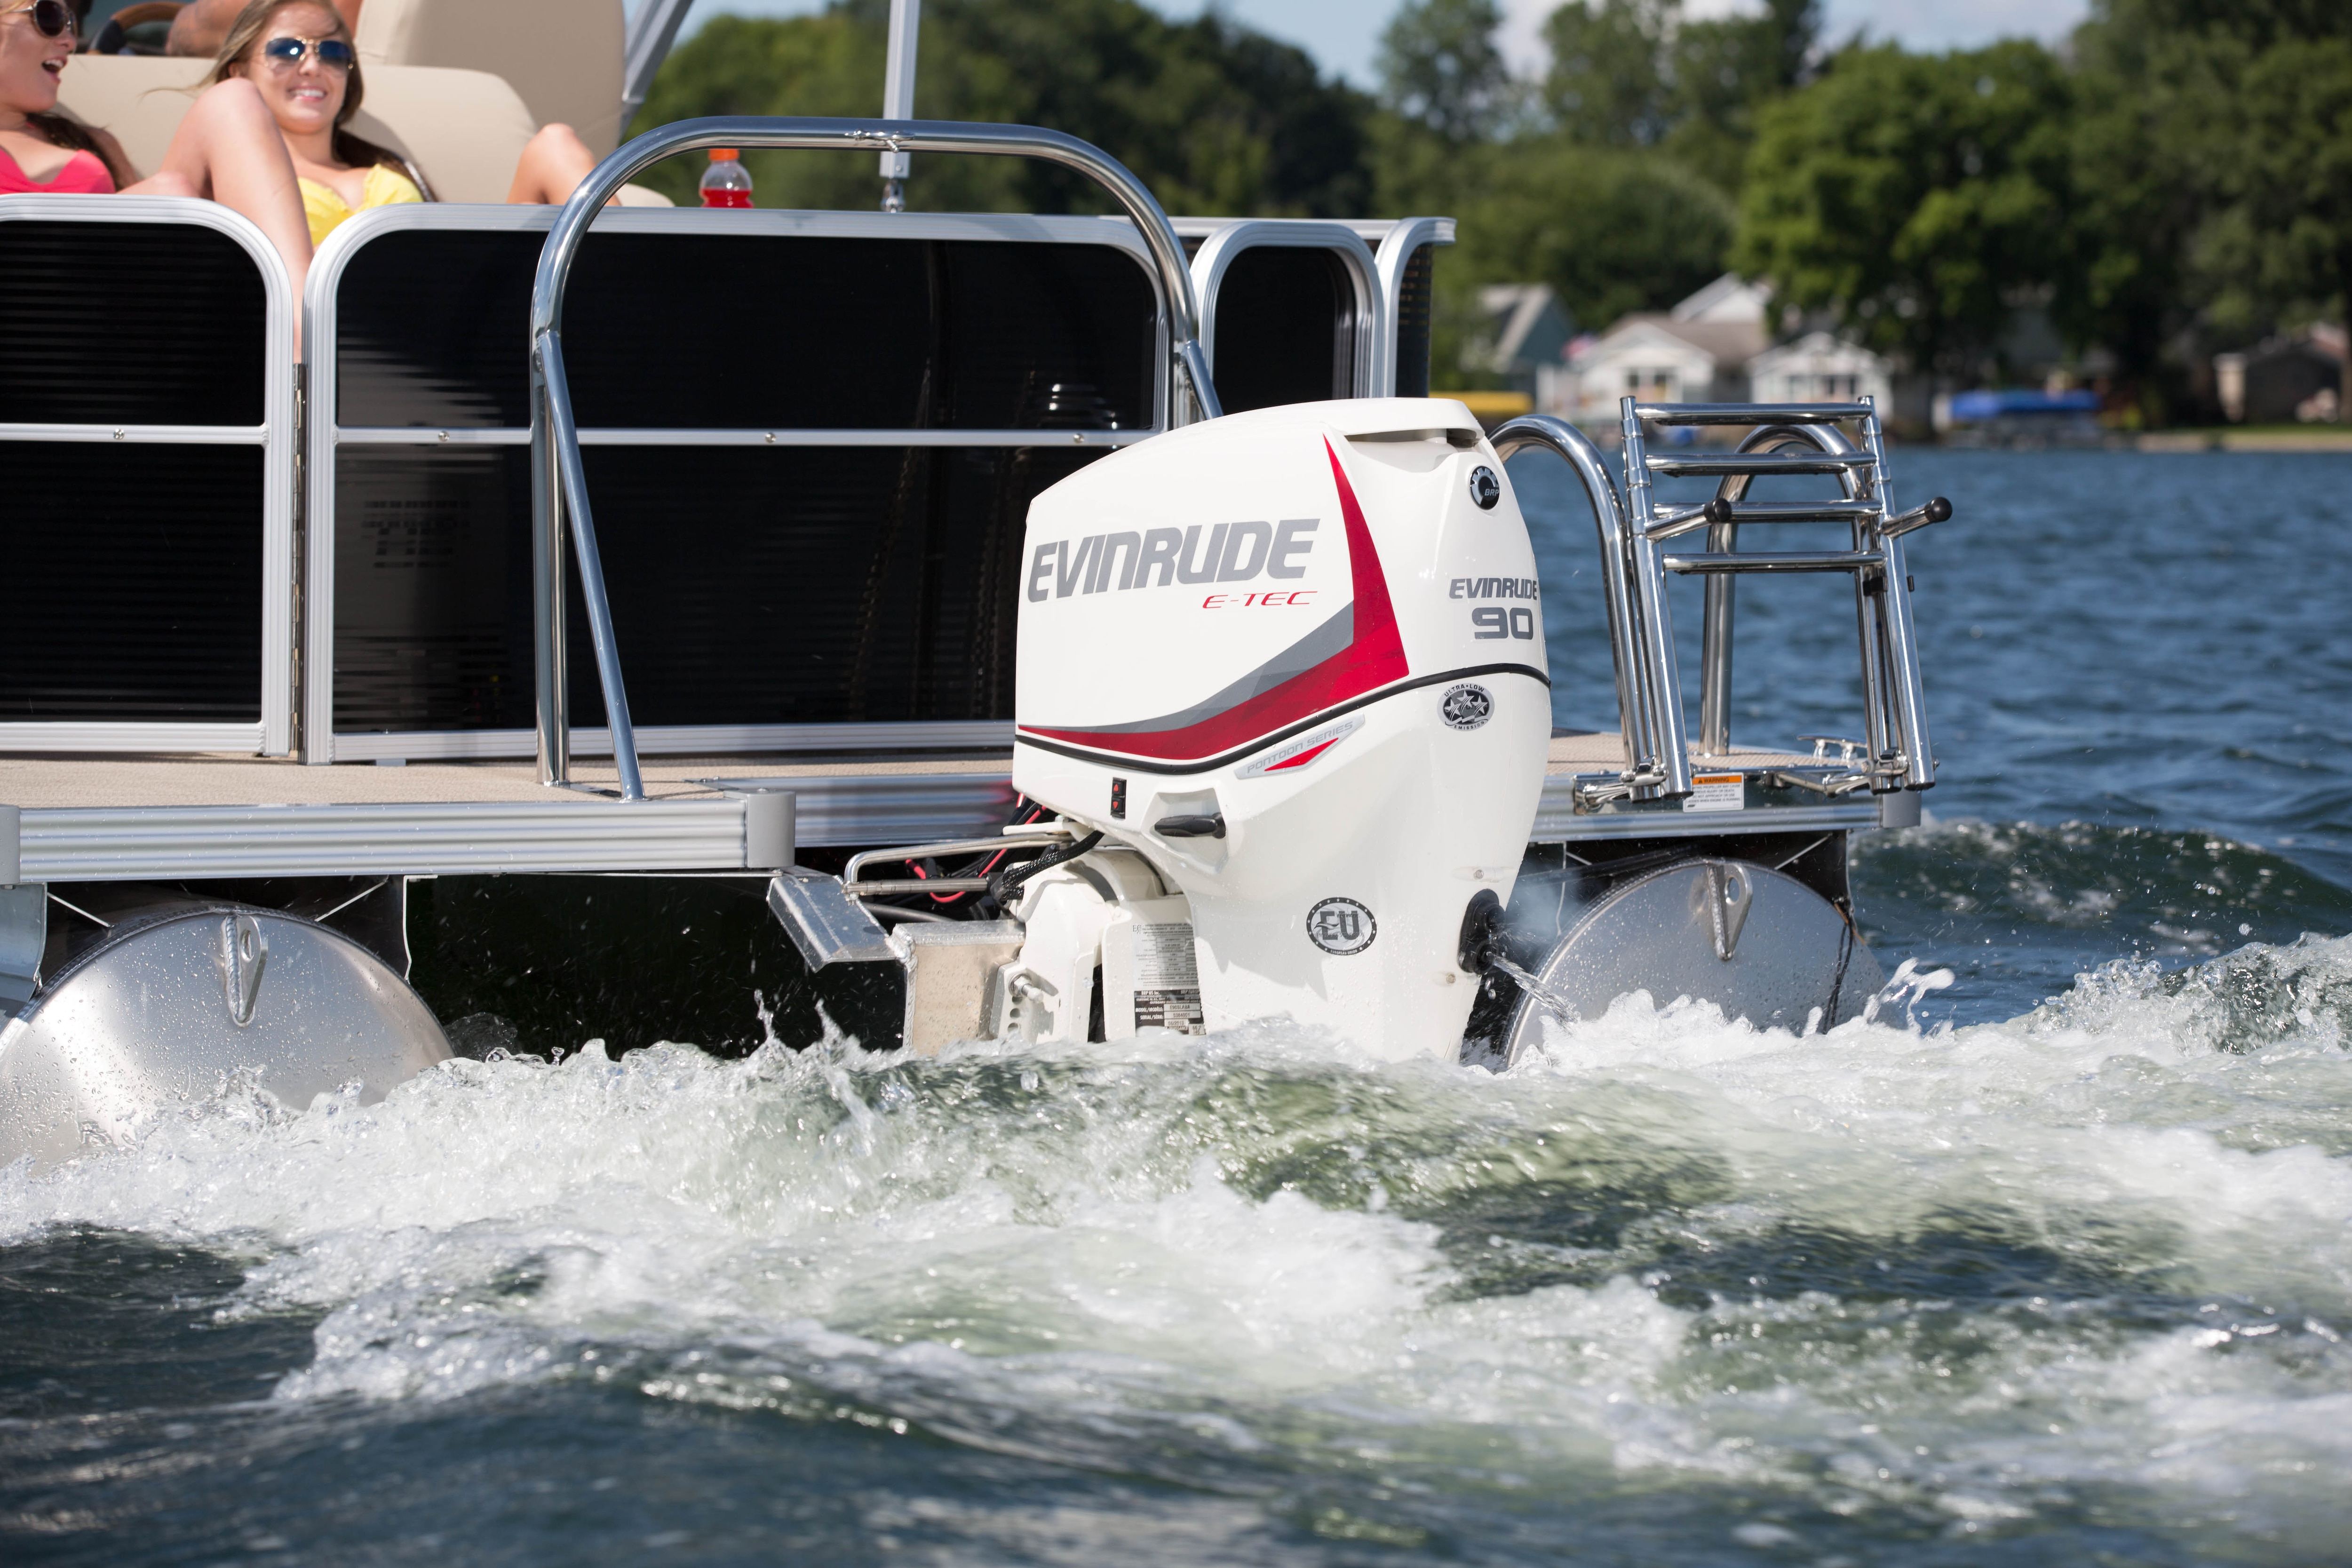 Close-up of Evinrude pontoon boat